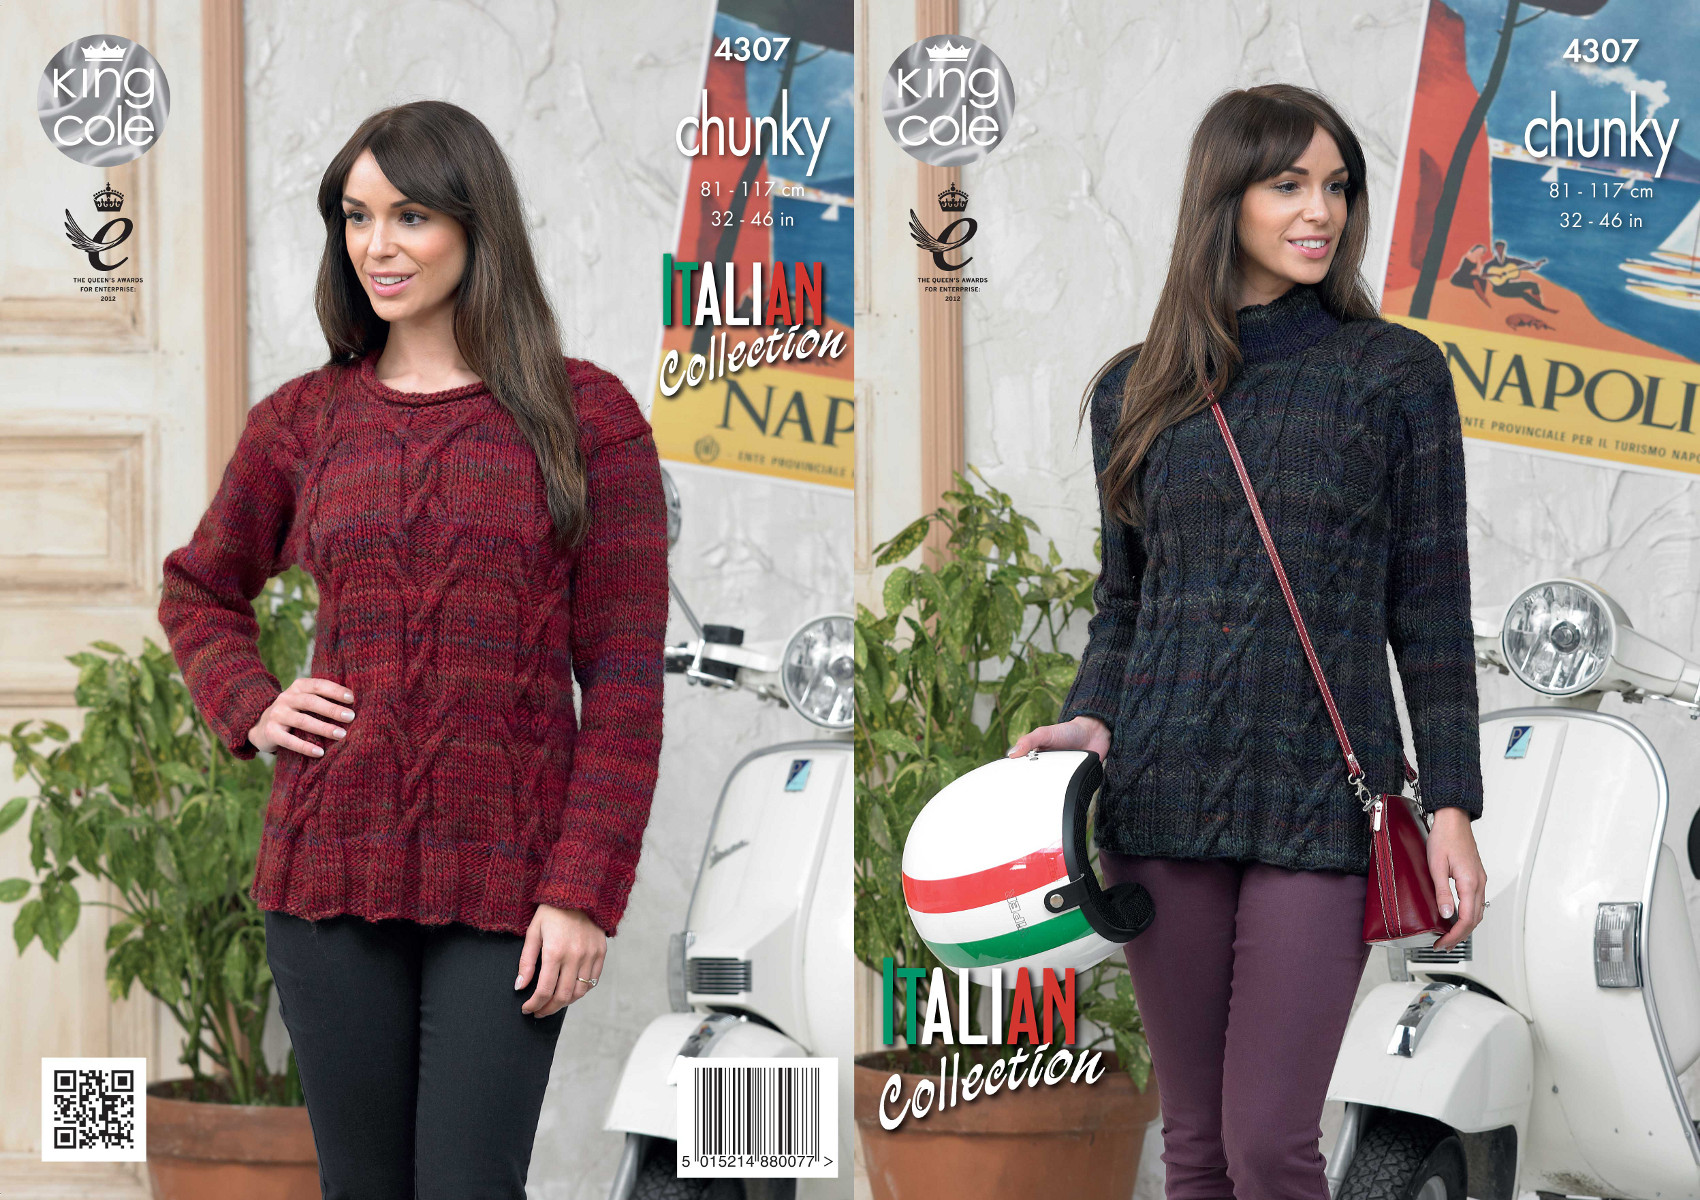 Womens polo v neck sweater jumper knitting pattern king cole please look at images below for the chart showing measurements yarn and materials requirement to make this garment bankloansurffo Image collections